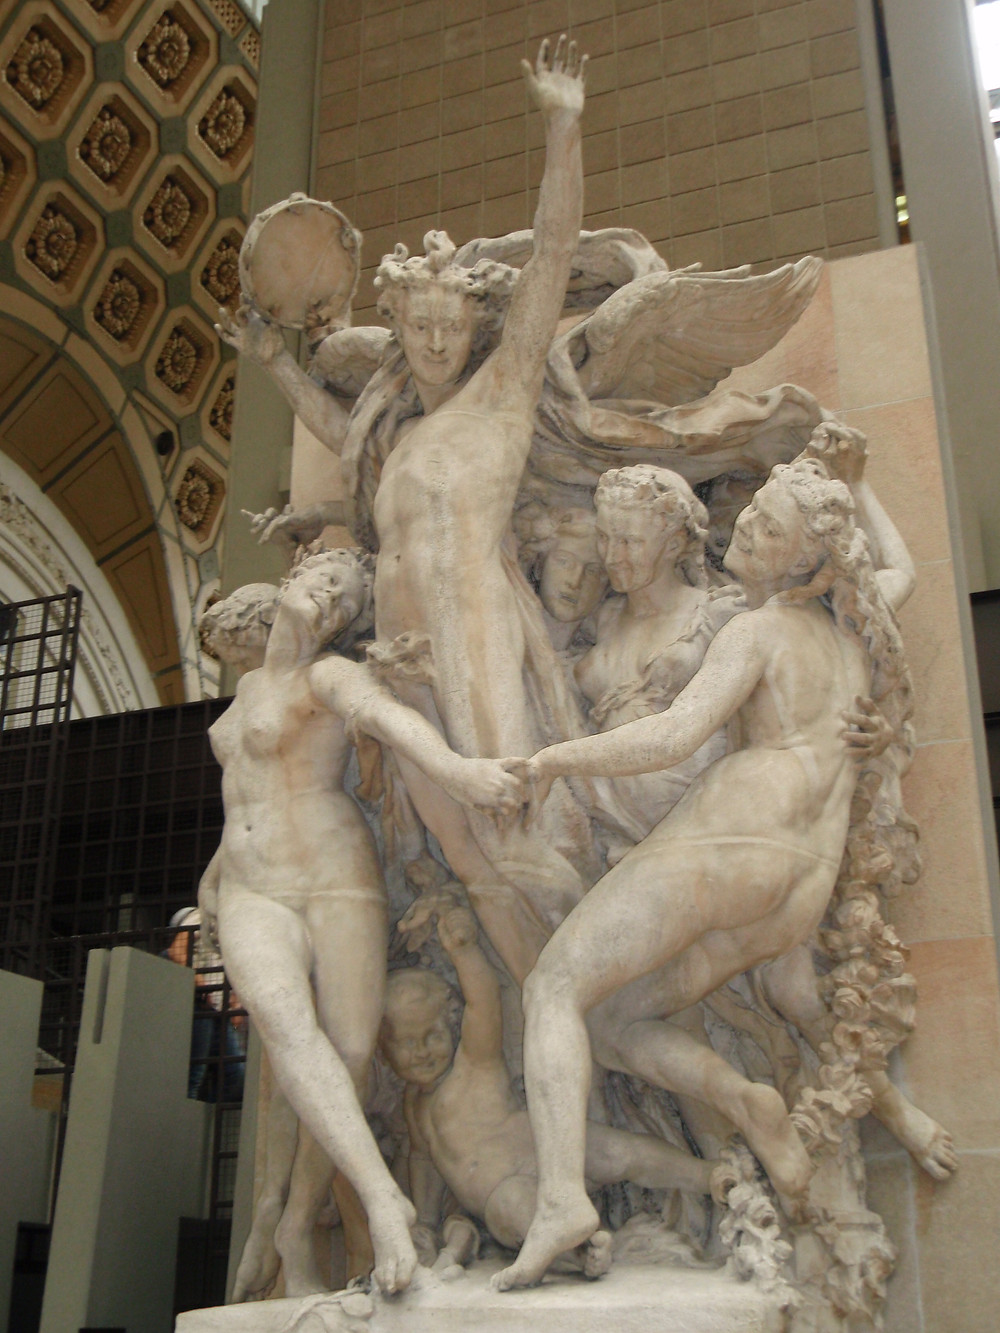 Jean-Baptiste Carpeaux's then controversial, The Dance, now in the Musee d'Orsay